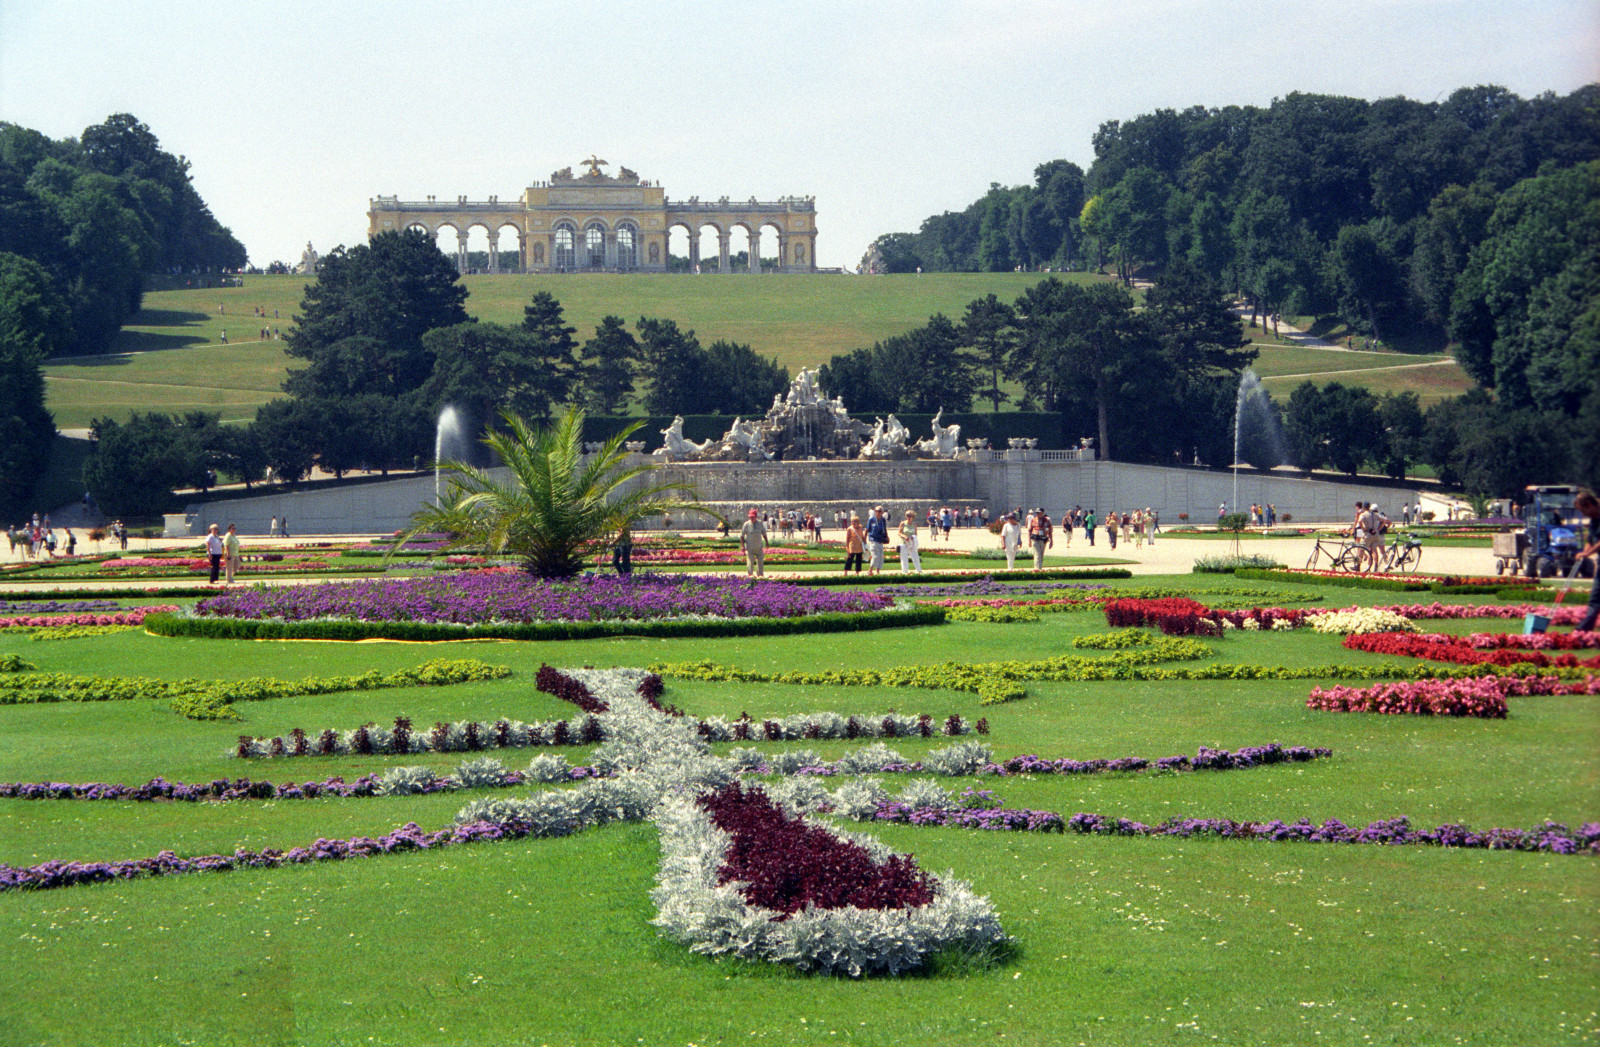 Gardens & Gloriette of Schonbrunn Palace